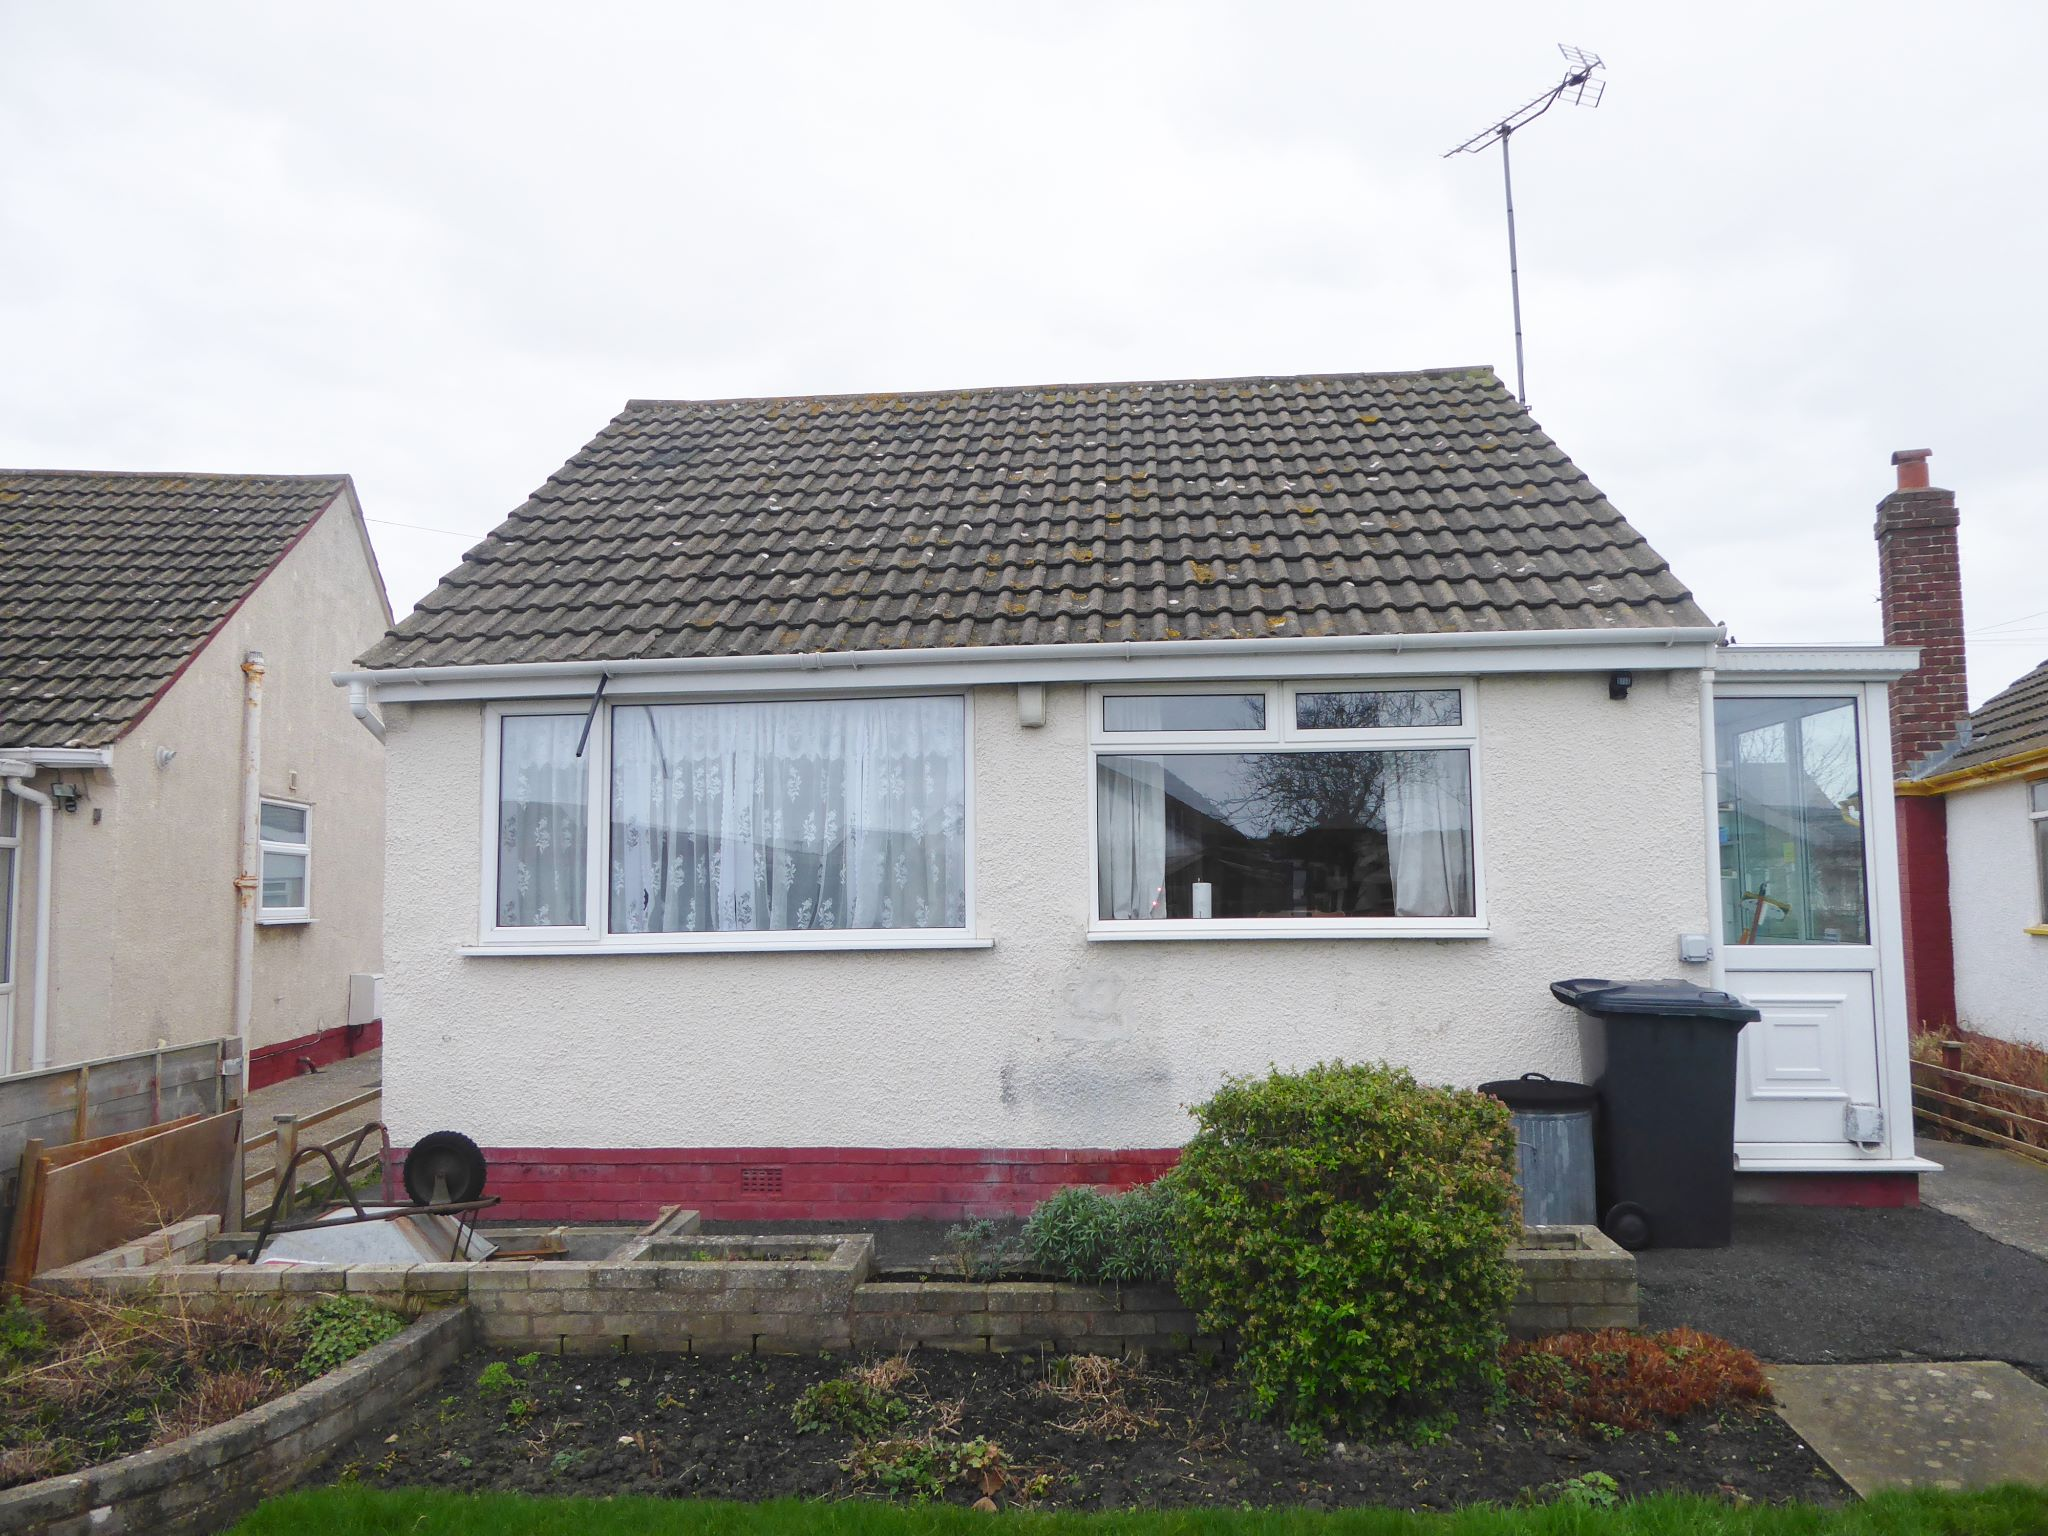 2 bedroom detached bungalow SSTC in Pensarn - Photograph 11